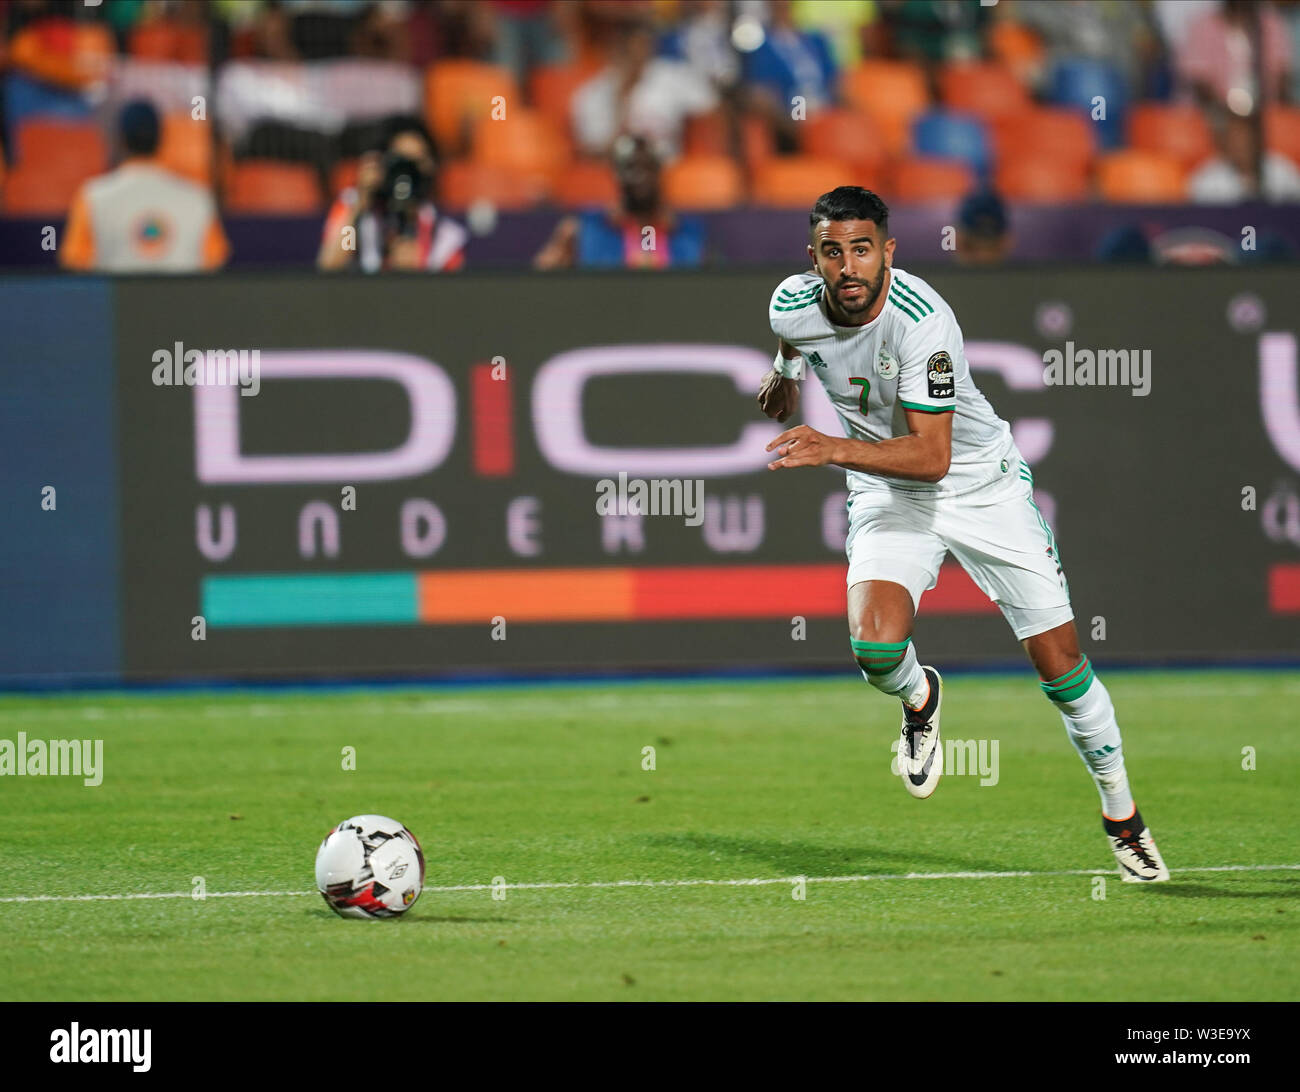 July 14, 2019 - Cairo, Algeria, Egypt - FRANCE OUT July 14, 2019: Riyad Karim Mahrez of Algeria during the 2019 African Cup of Nations match between Algeria and Nigeria at the Cairo International Stadium in Cairo, Egypt. Ulrik Pedersen/CSM. - Stock Image